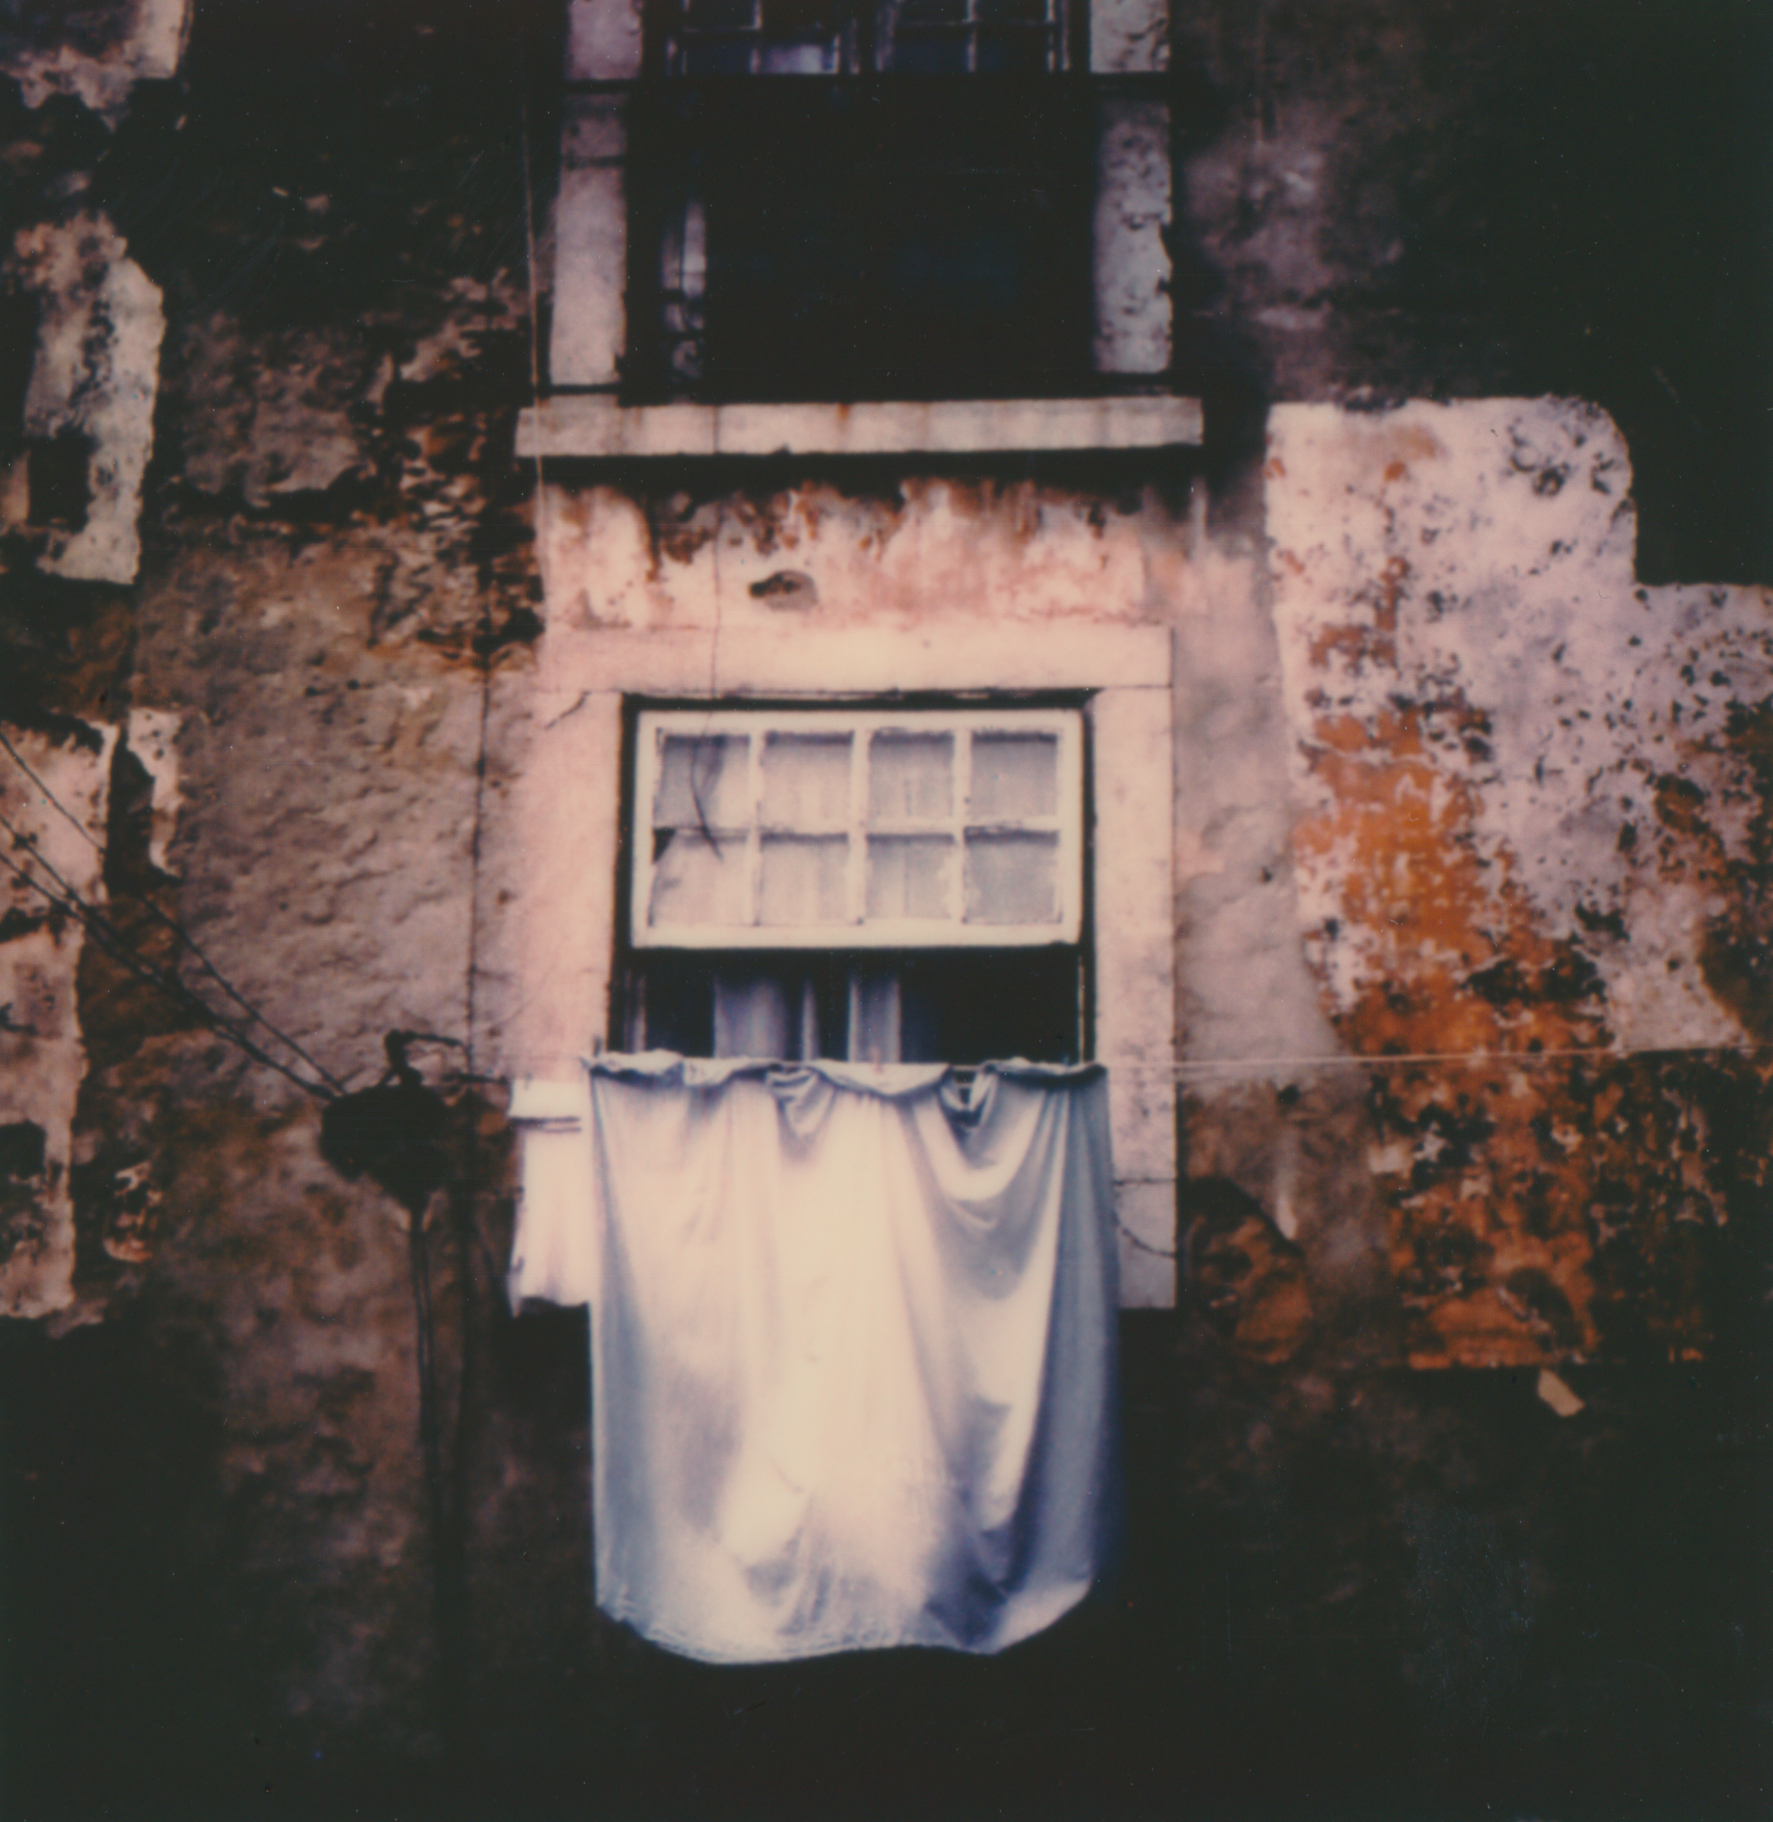 Laundry Day Lisbon | Impossible Project Instant Lab | Impossible Project 70 Color Film | Per Forsström